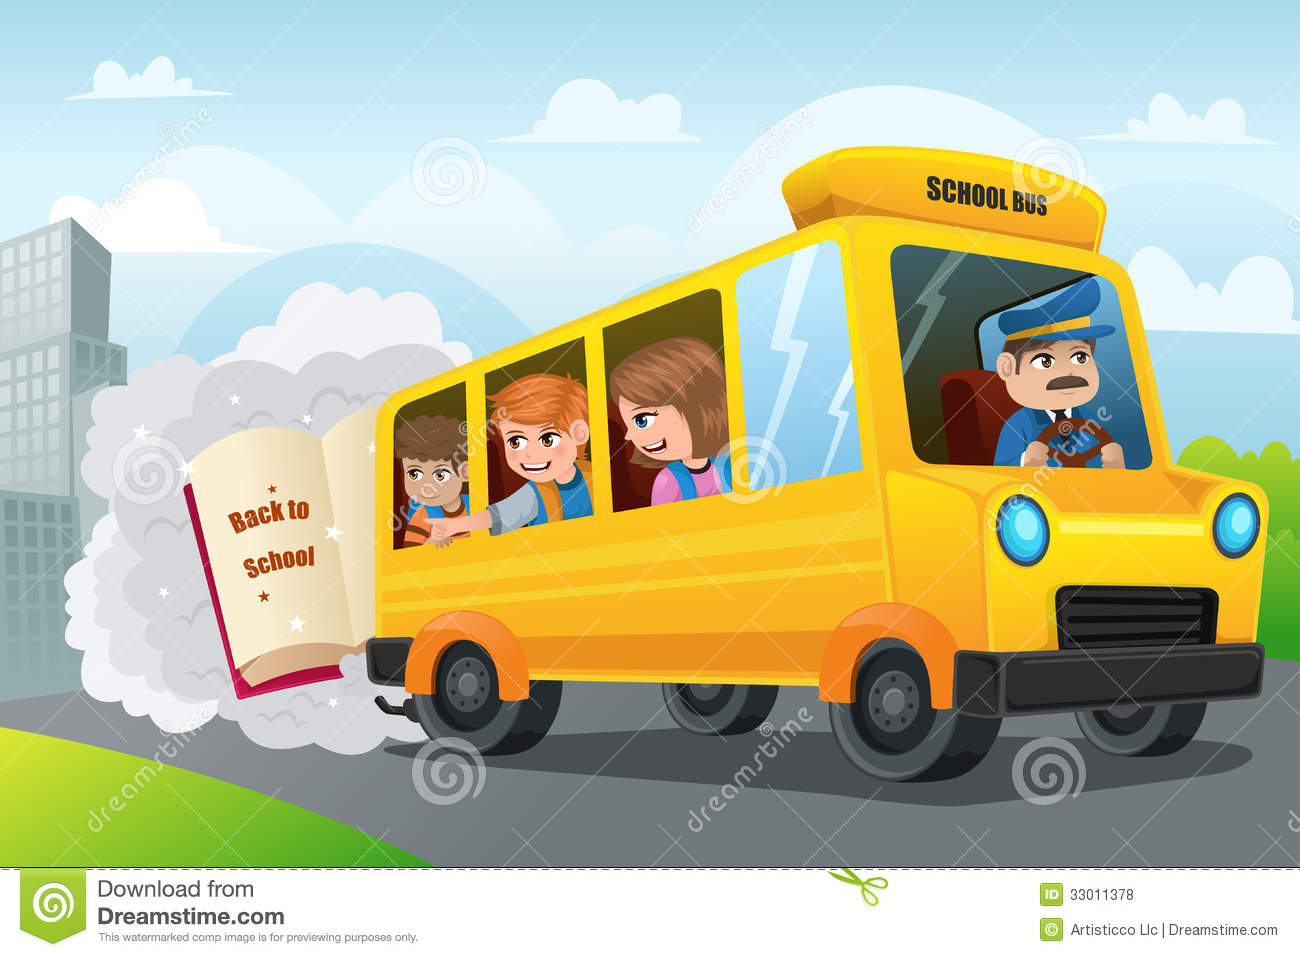 back to school royalty free stock photos image 33011378 Old Bus Clip Art Cute Bus Clip Art